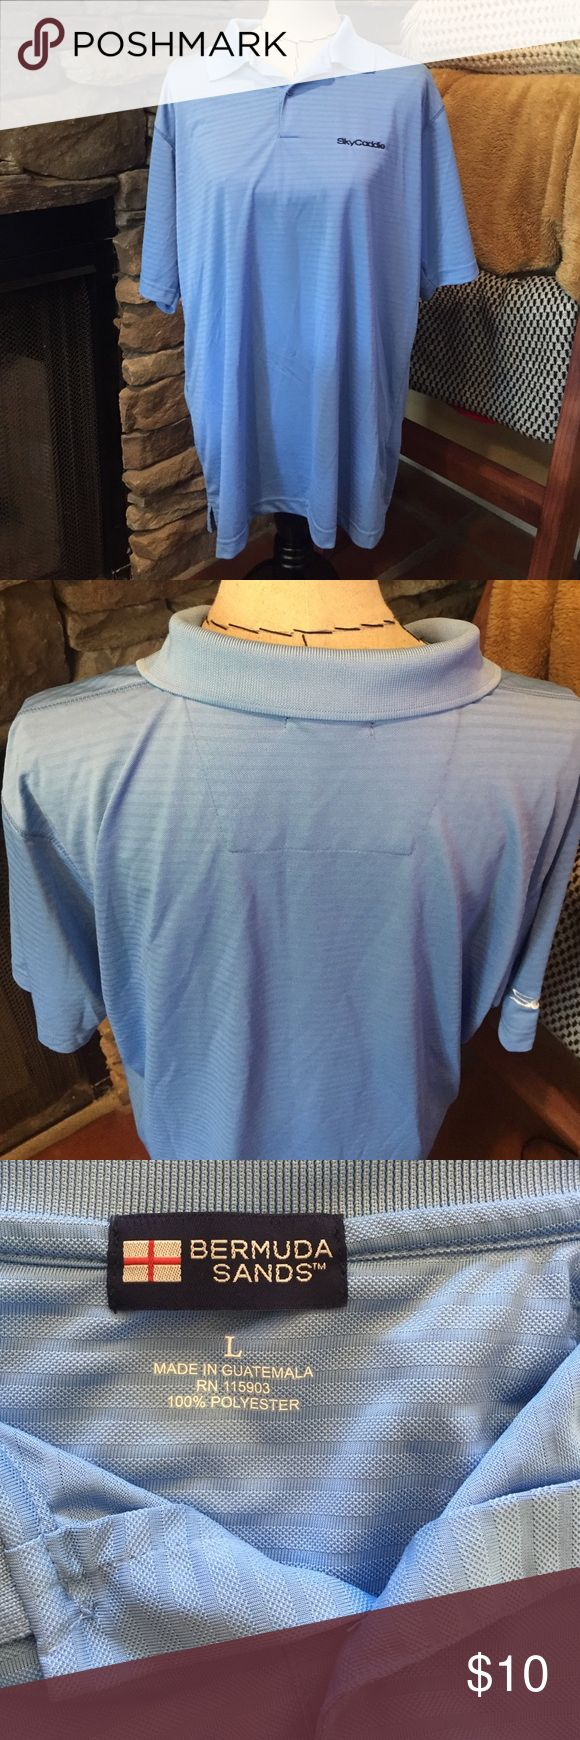 Bermuda Sands gold shirt, size L, great cond.! Bermuda Sands gold shirt, size L, sky caddie, great condition! Bermuda Sands Shirts Polos